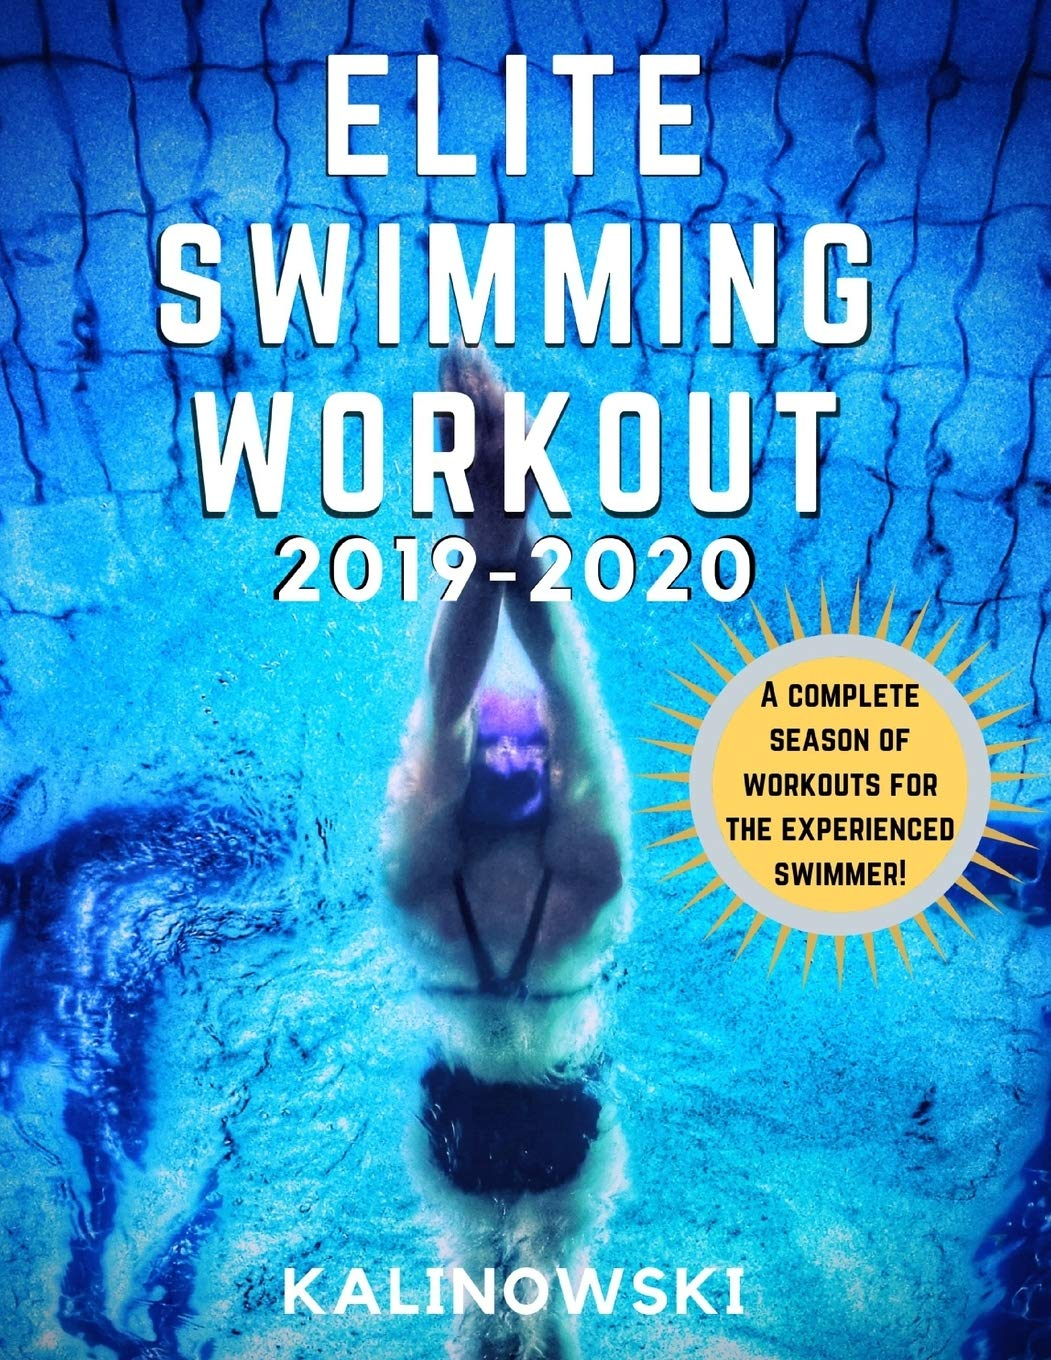 Image OfElite Swimming Workout: 2019-2020 (Elite Workouts 2019-2020)